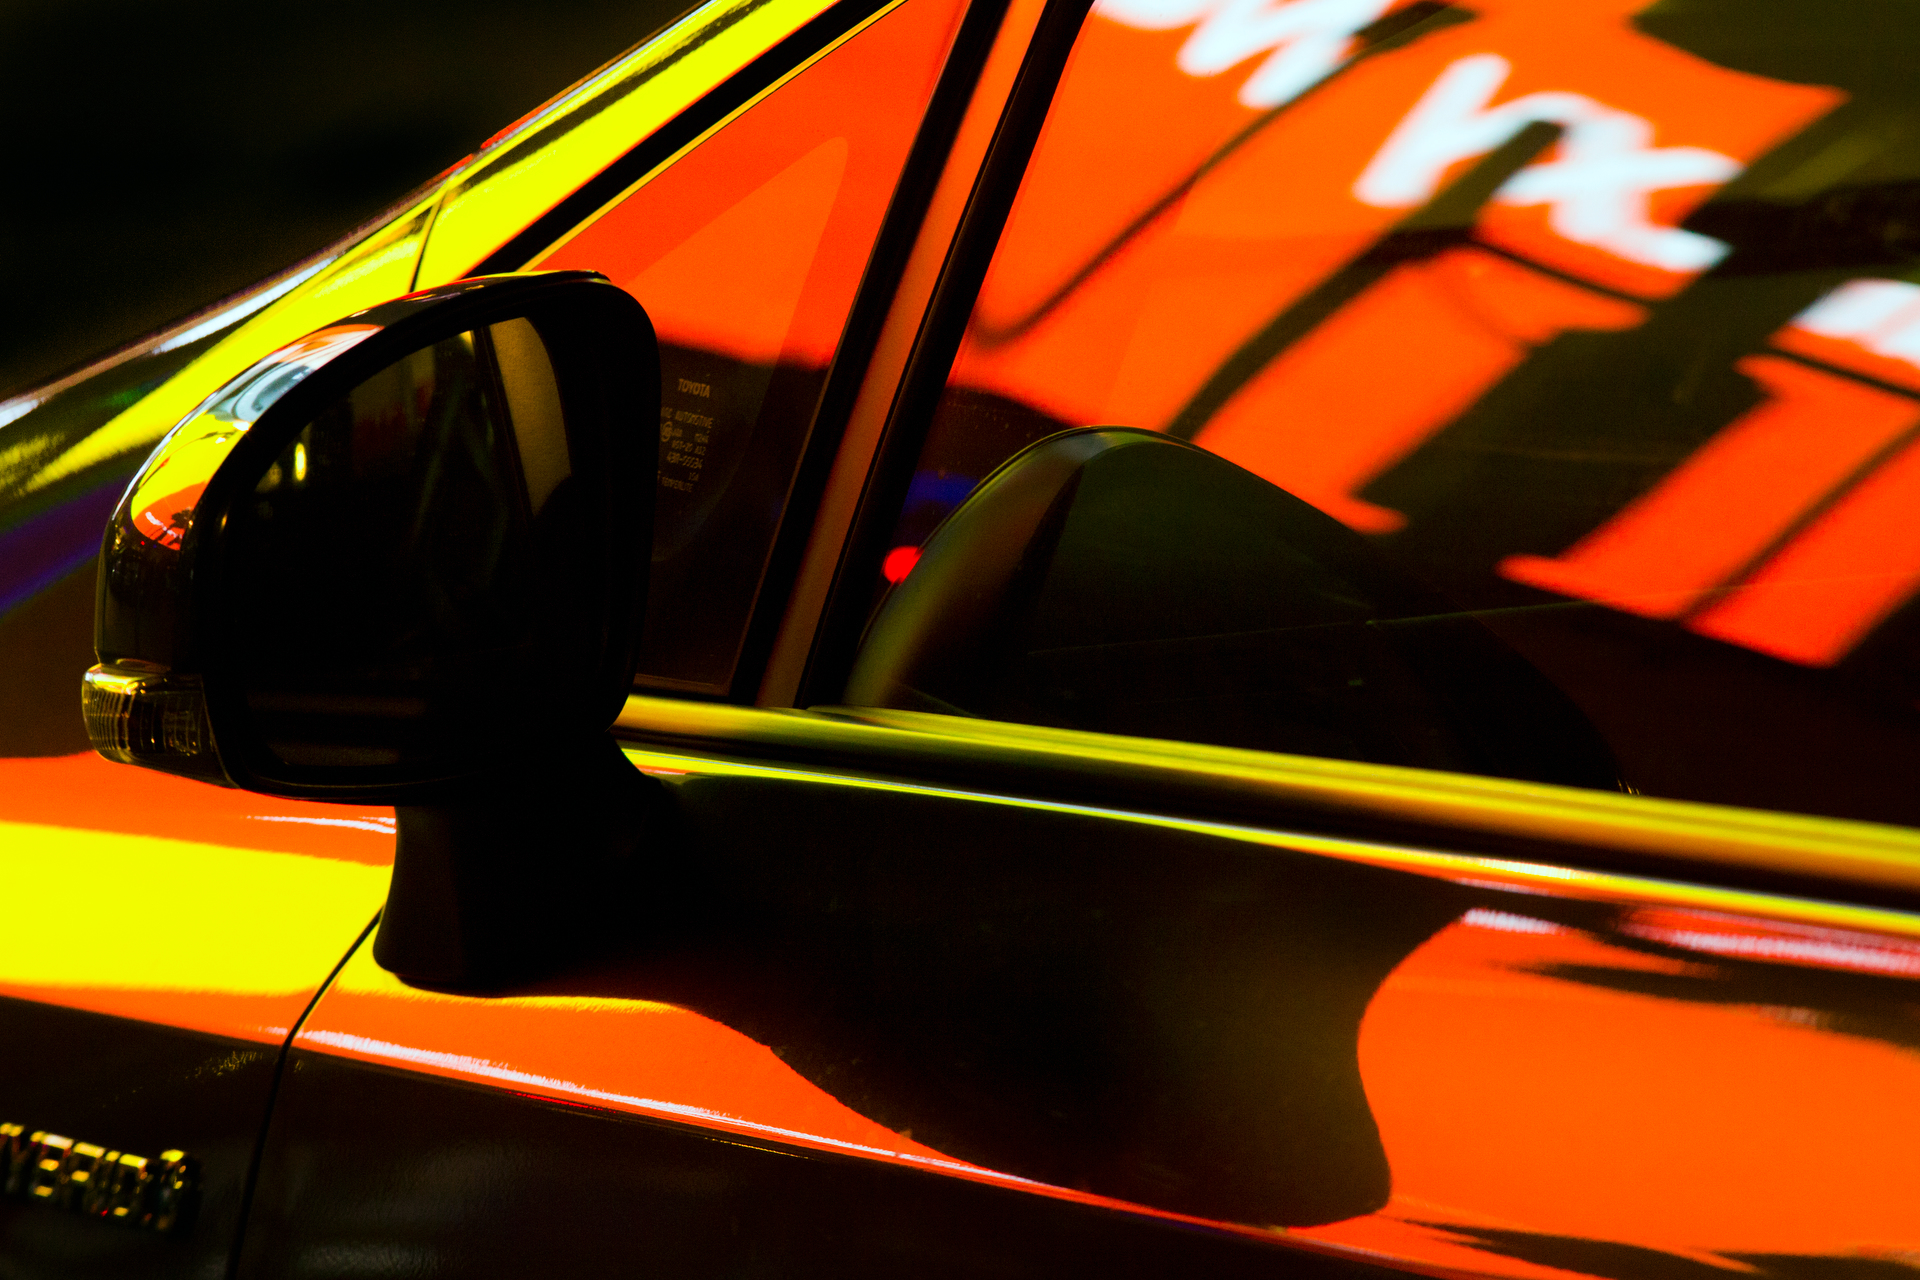 Car at night lit by advertising from the Autos series by street photographer Nick Turpin